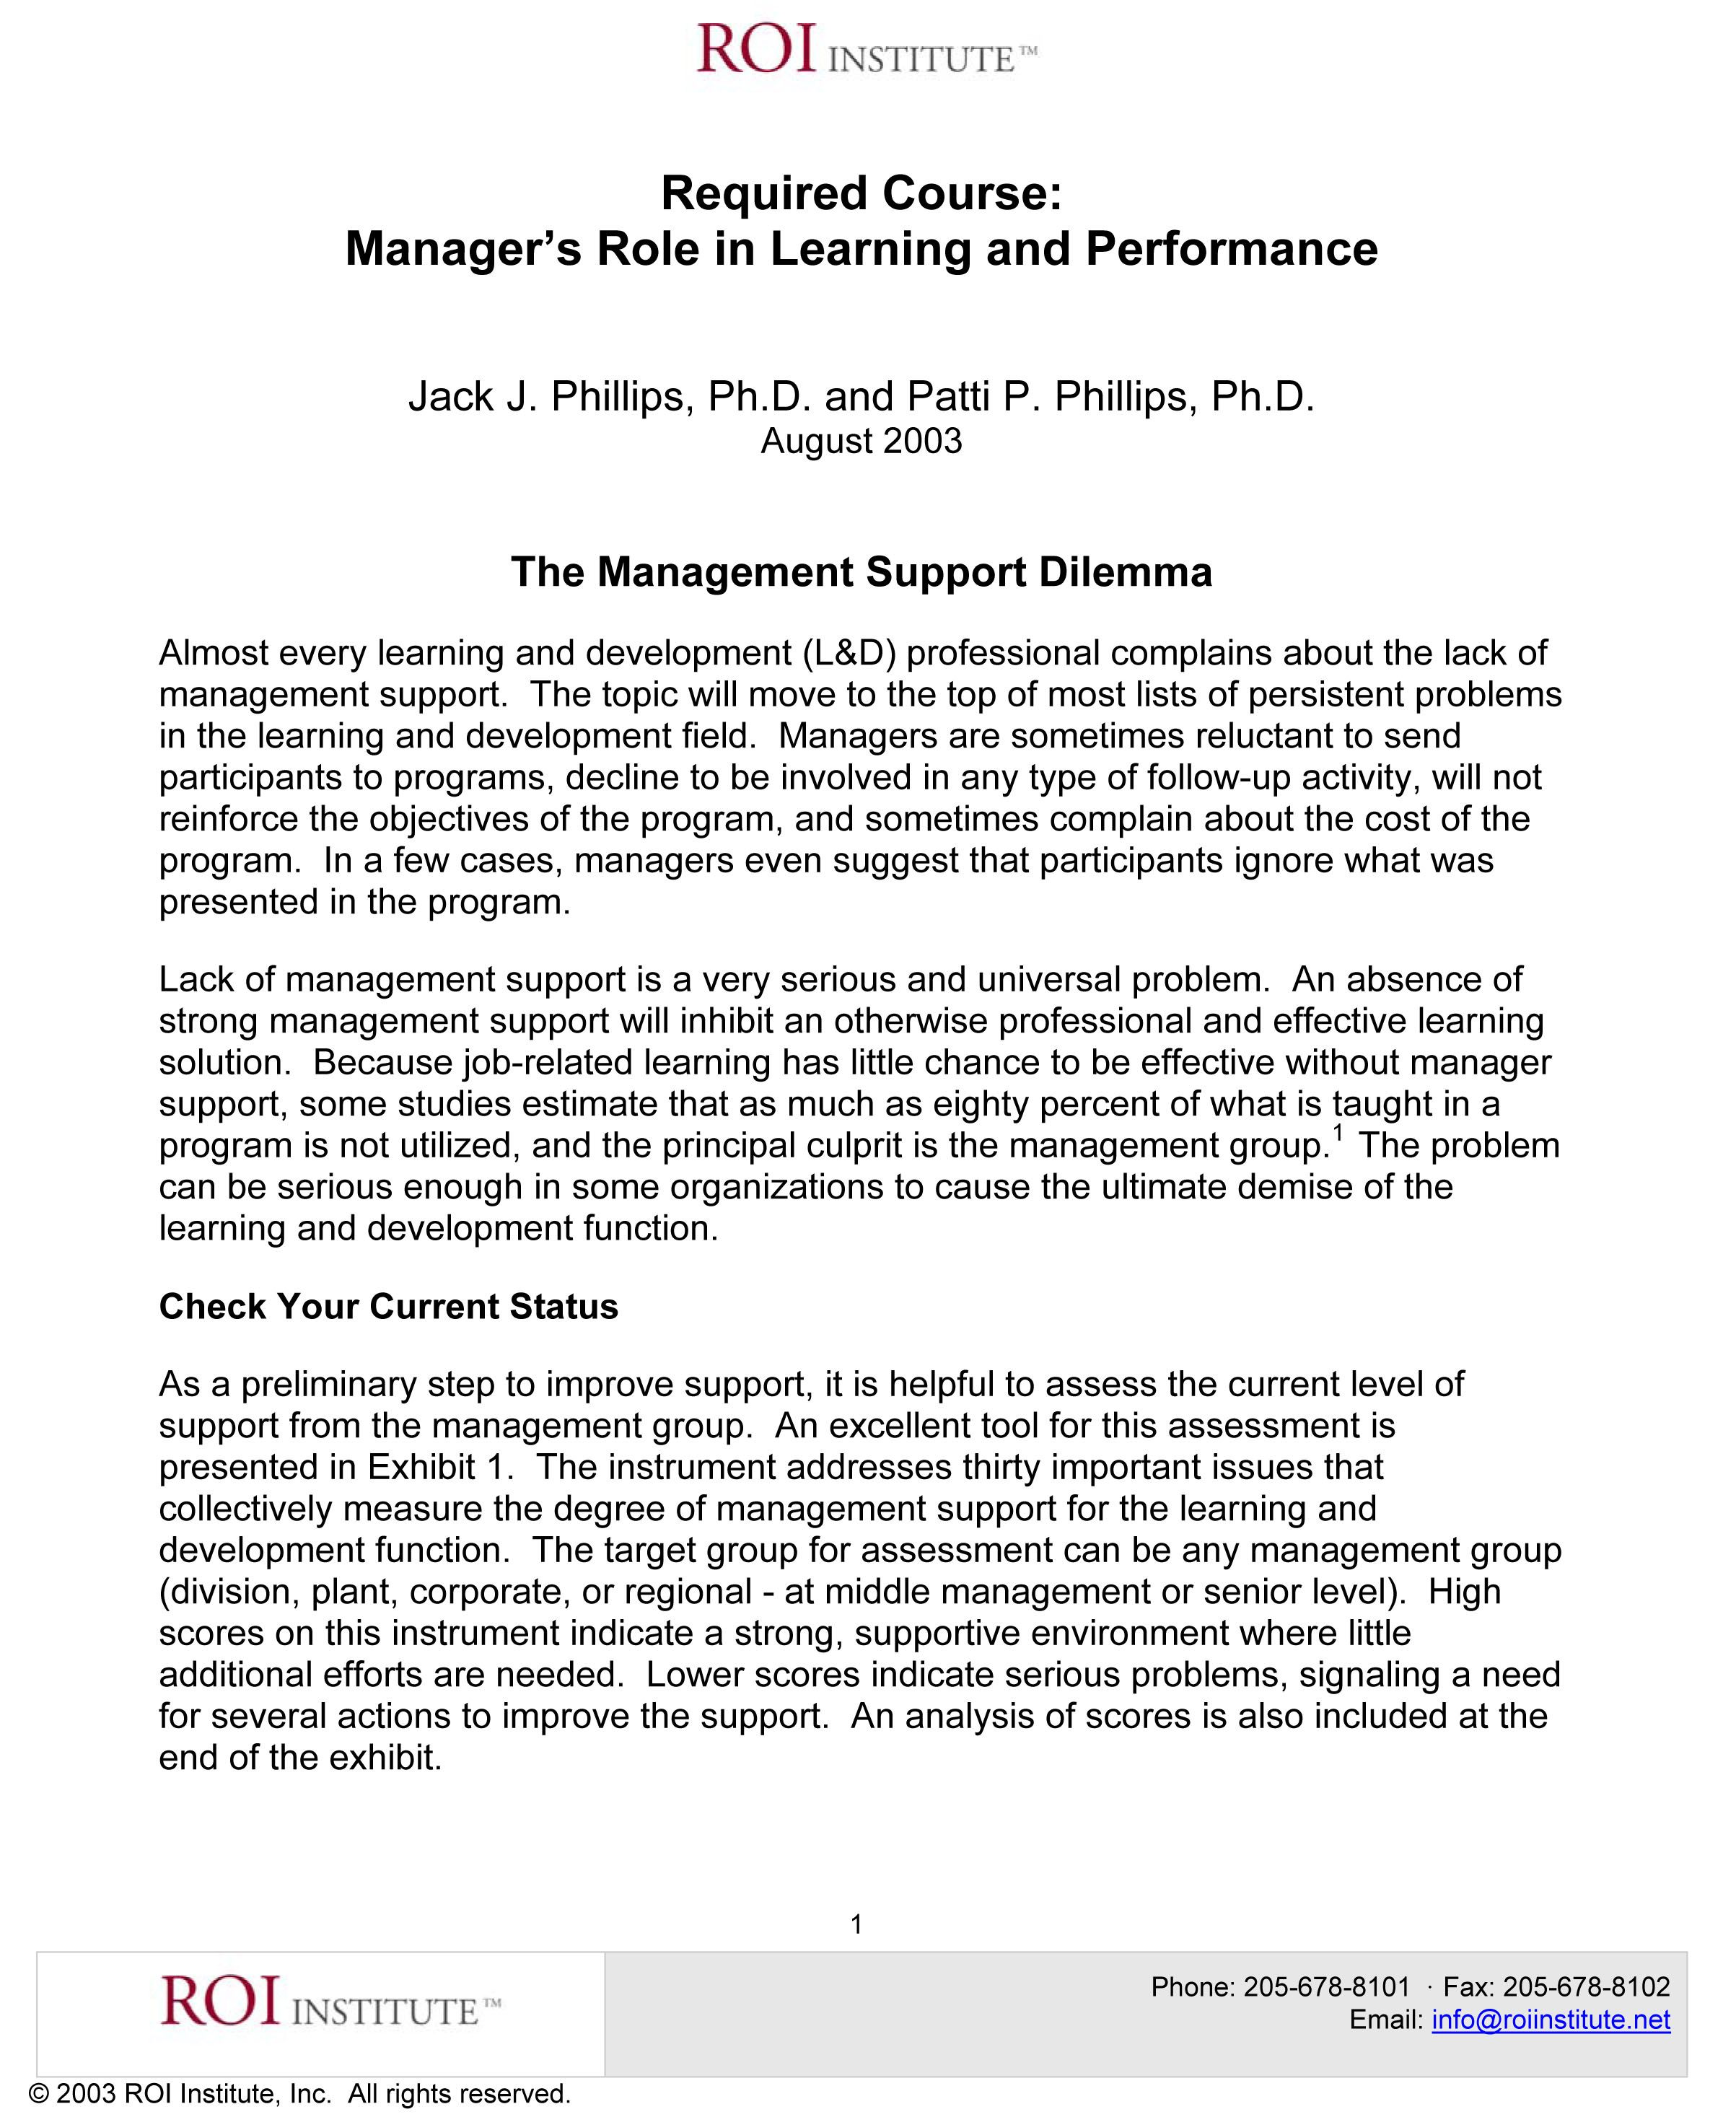 Manager's Role in Learning and Performance